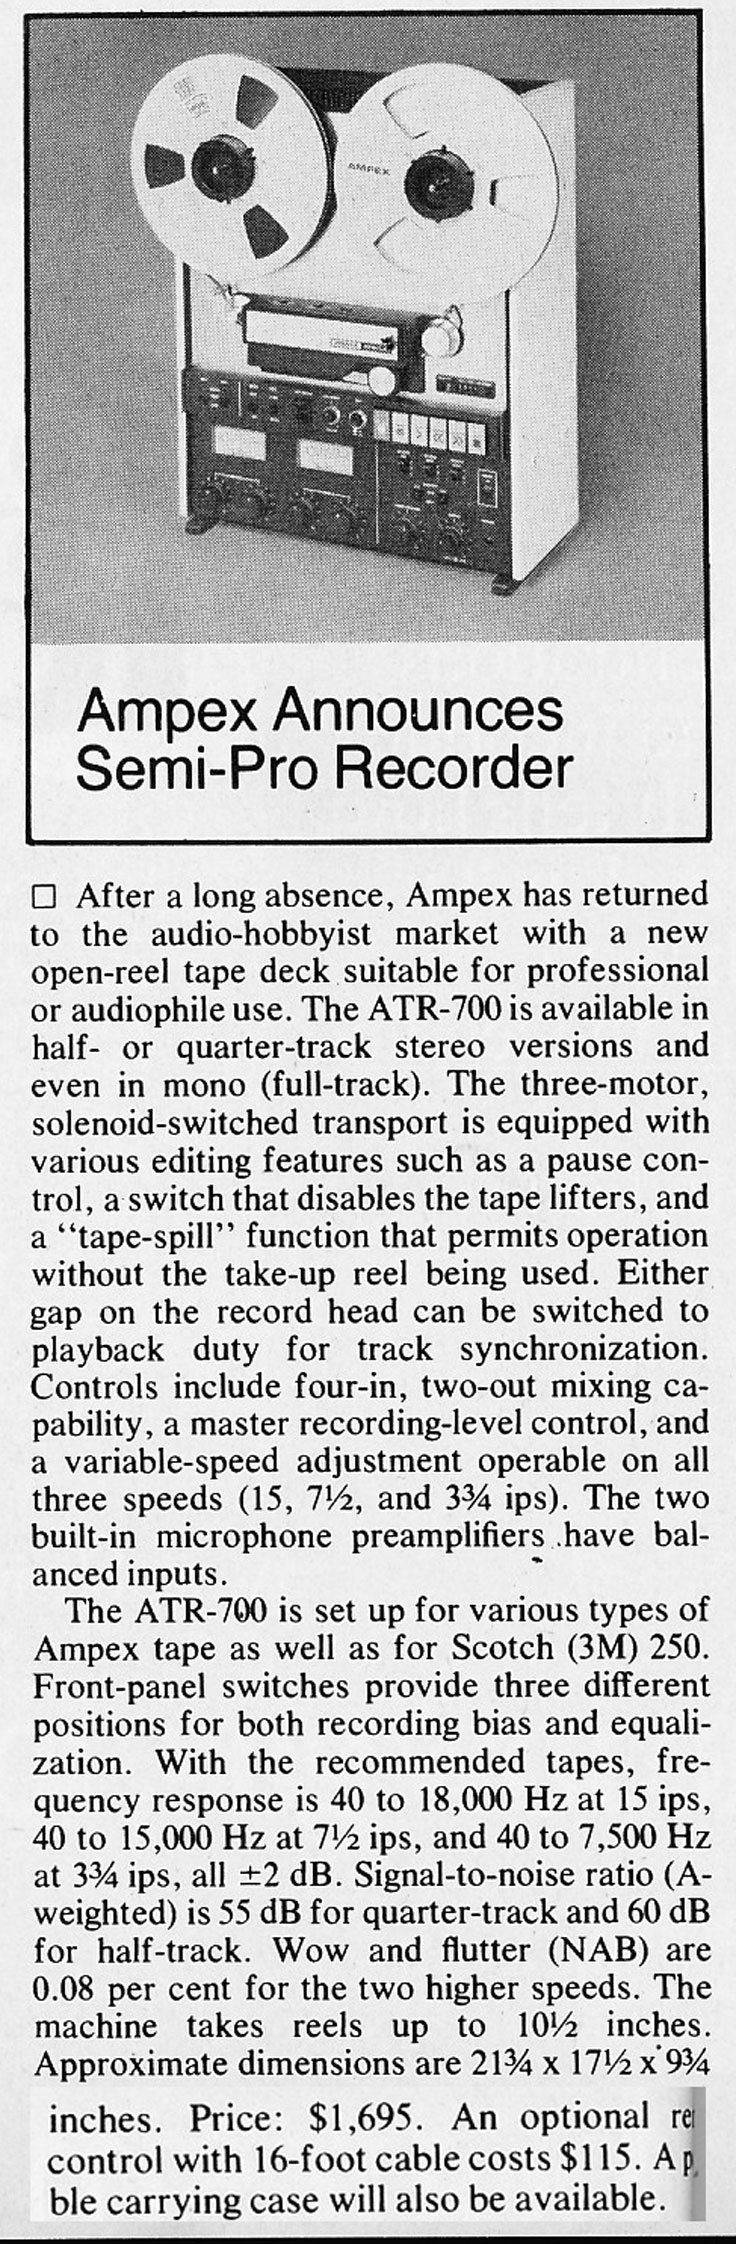 1977 review of the Ampex ATR-700 professional reel to reel tape recorder in   Reel2ReelTexas.com's vintage recording collection